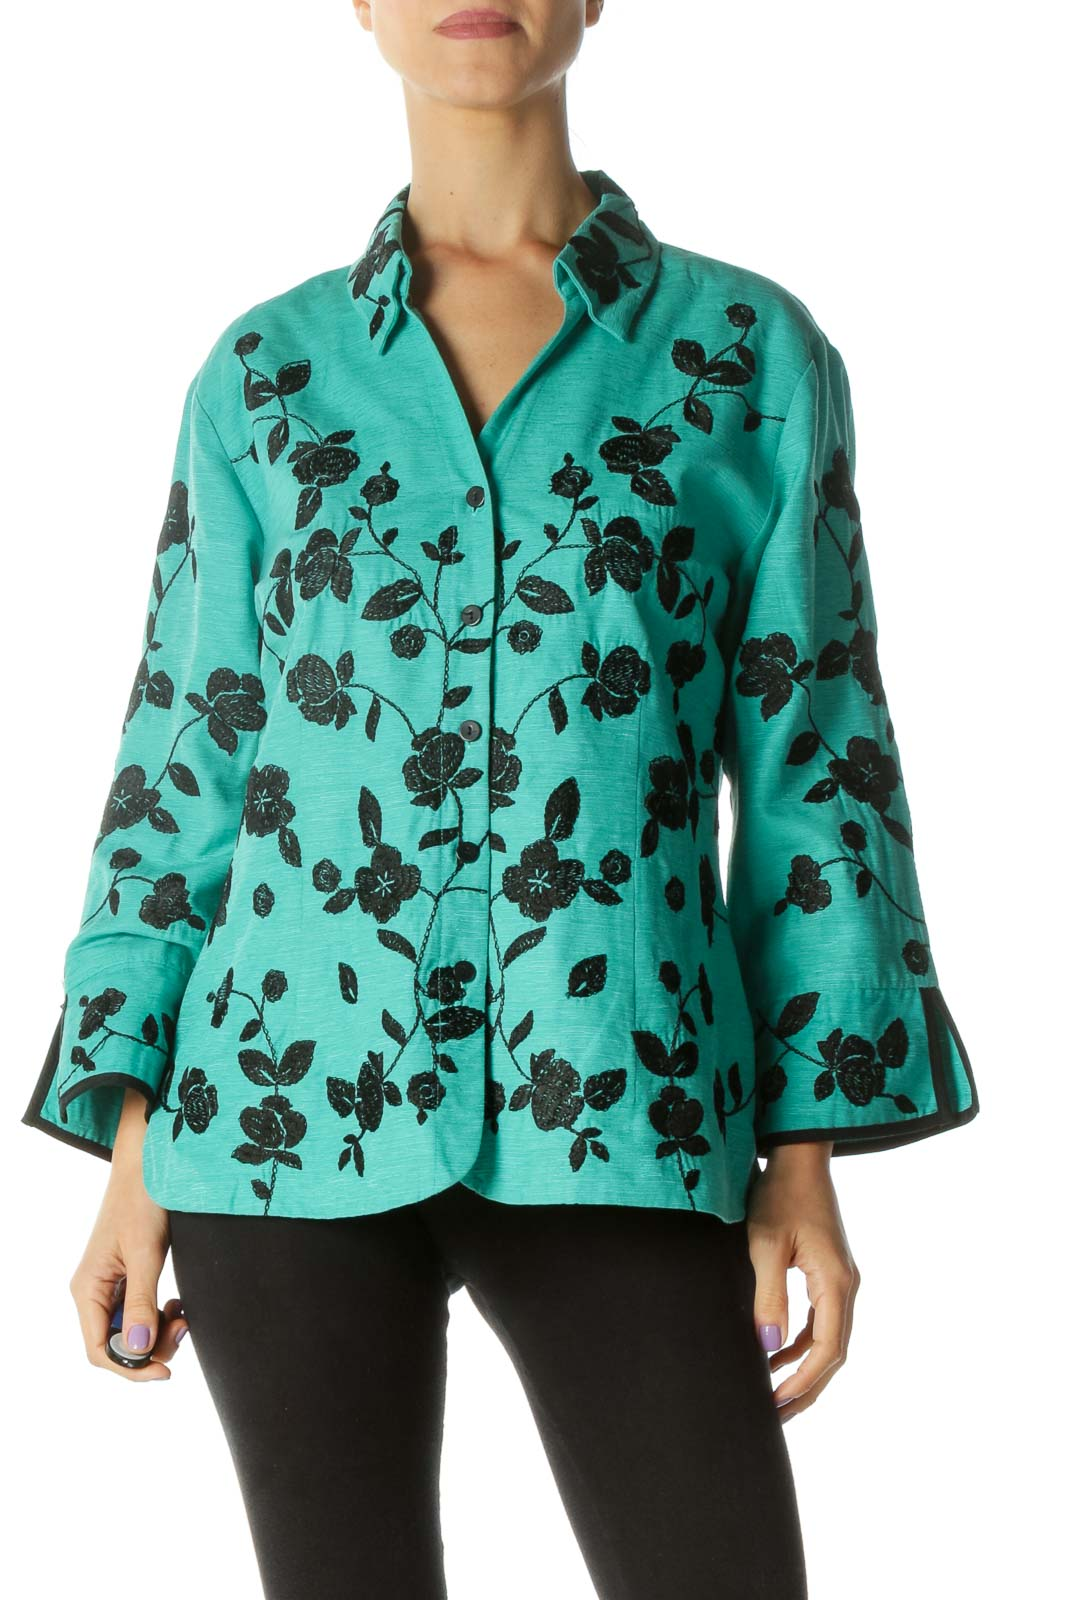 Green and Black Floral Print Button Down Shirt